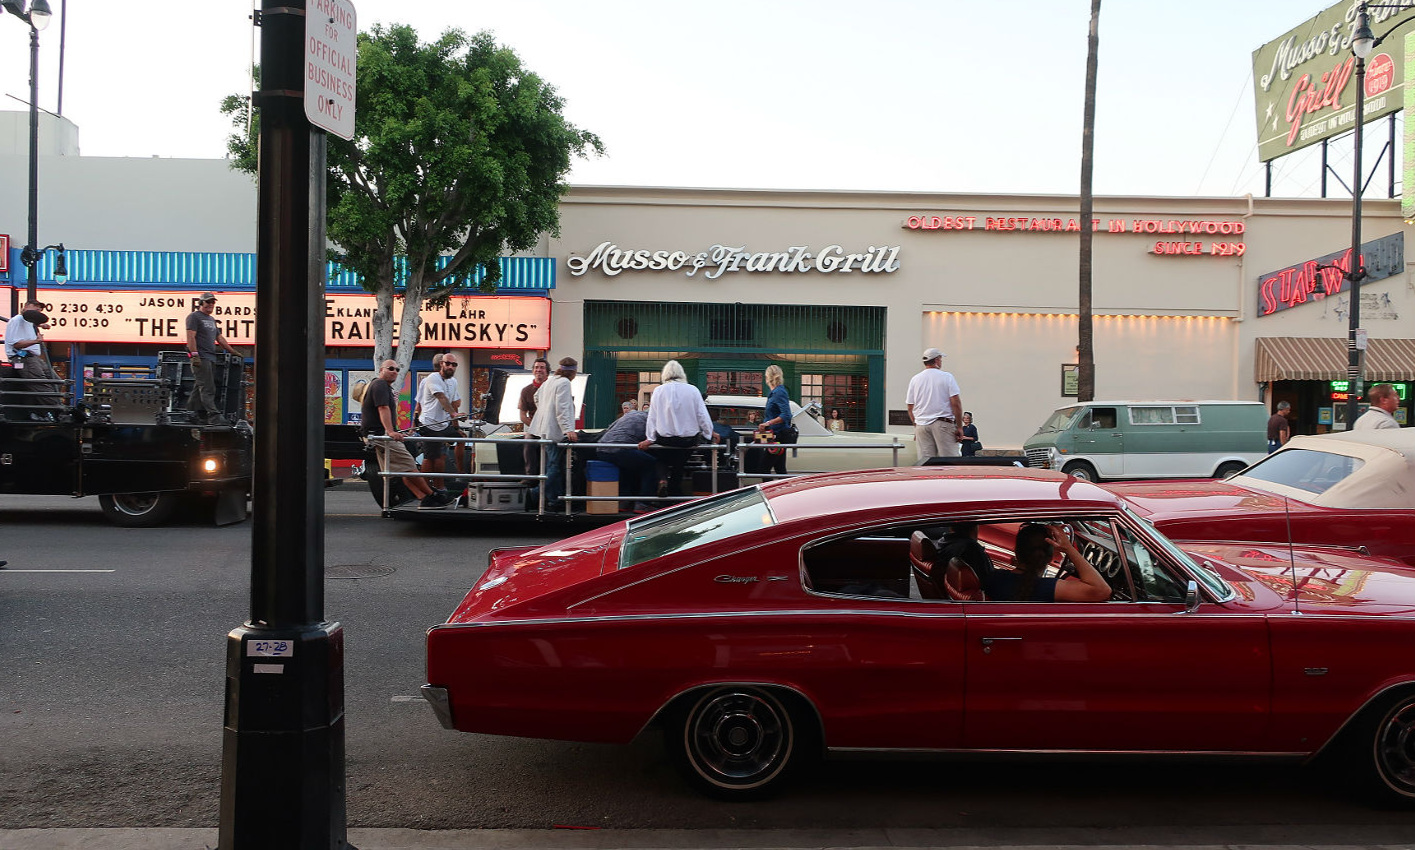 Filming of Once Upon a Time in Hollywood on the street - 1966 Dodge Charger in the foreground